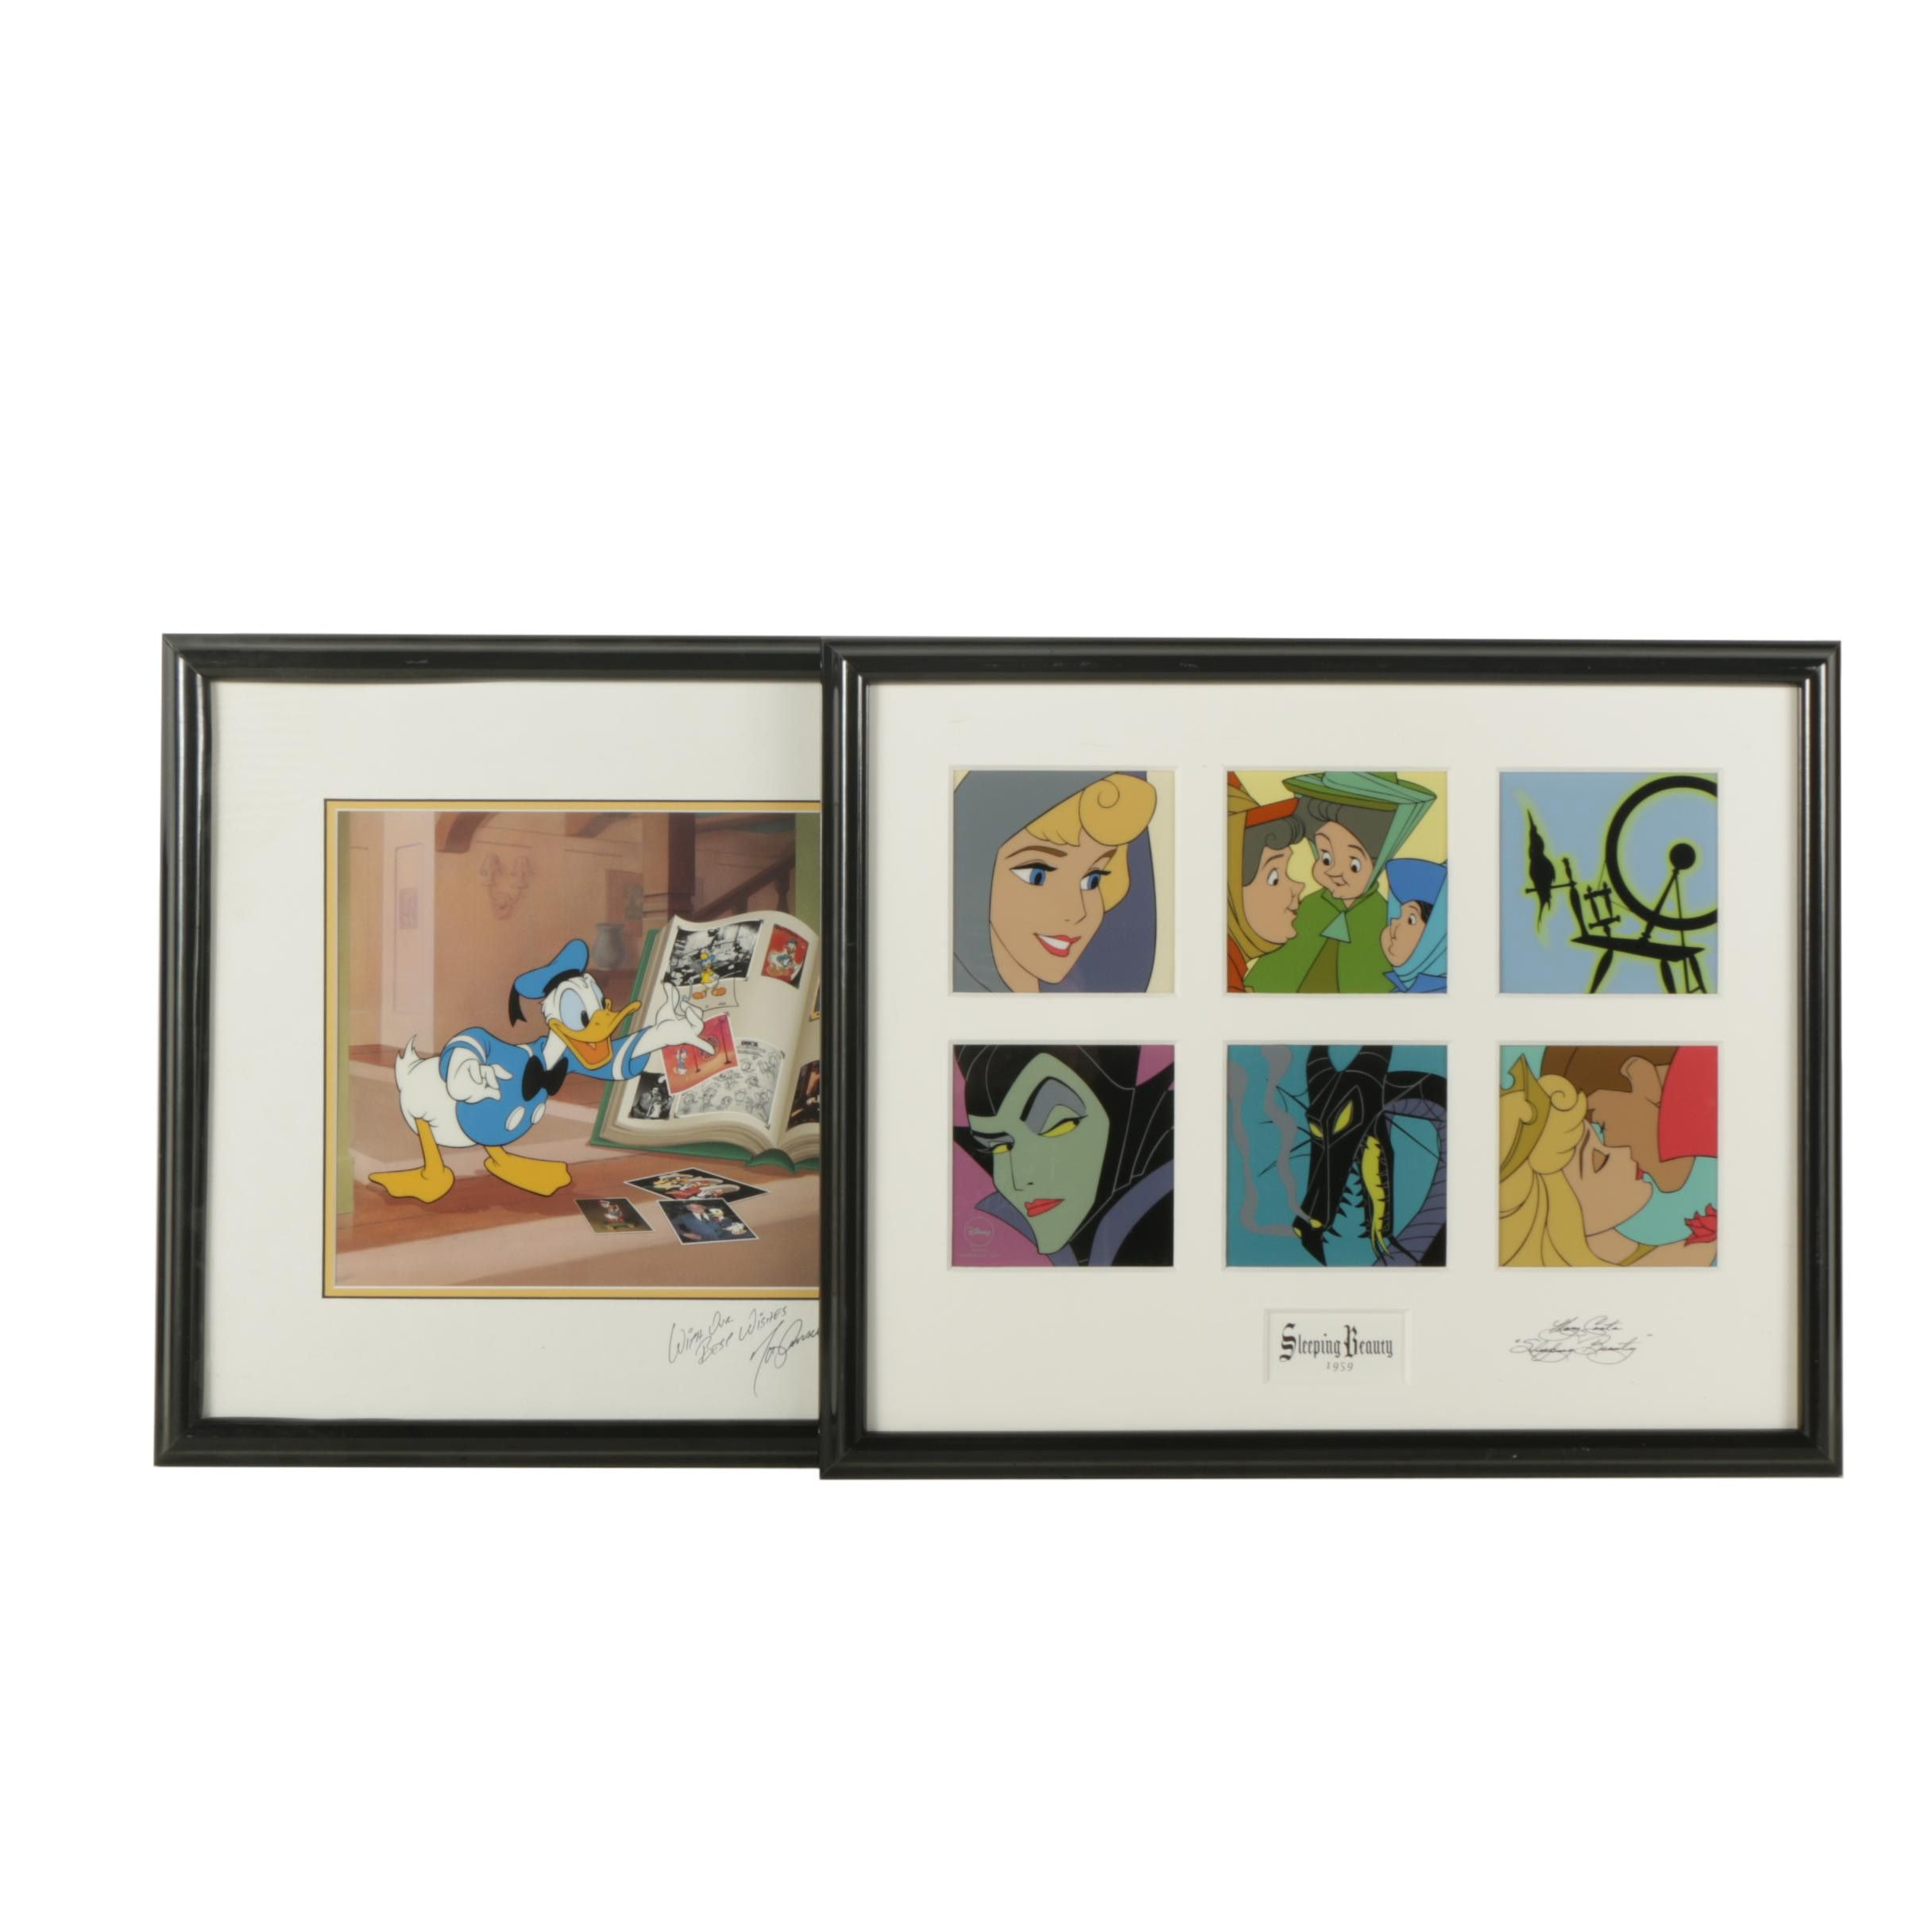 Limited Edition Disney Animation Cels Featuring Donald Duck and Sleeping Beauty